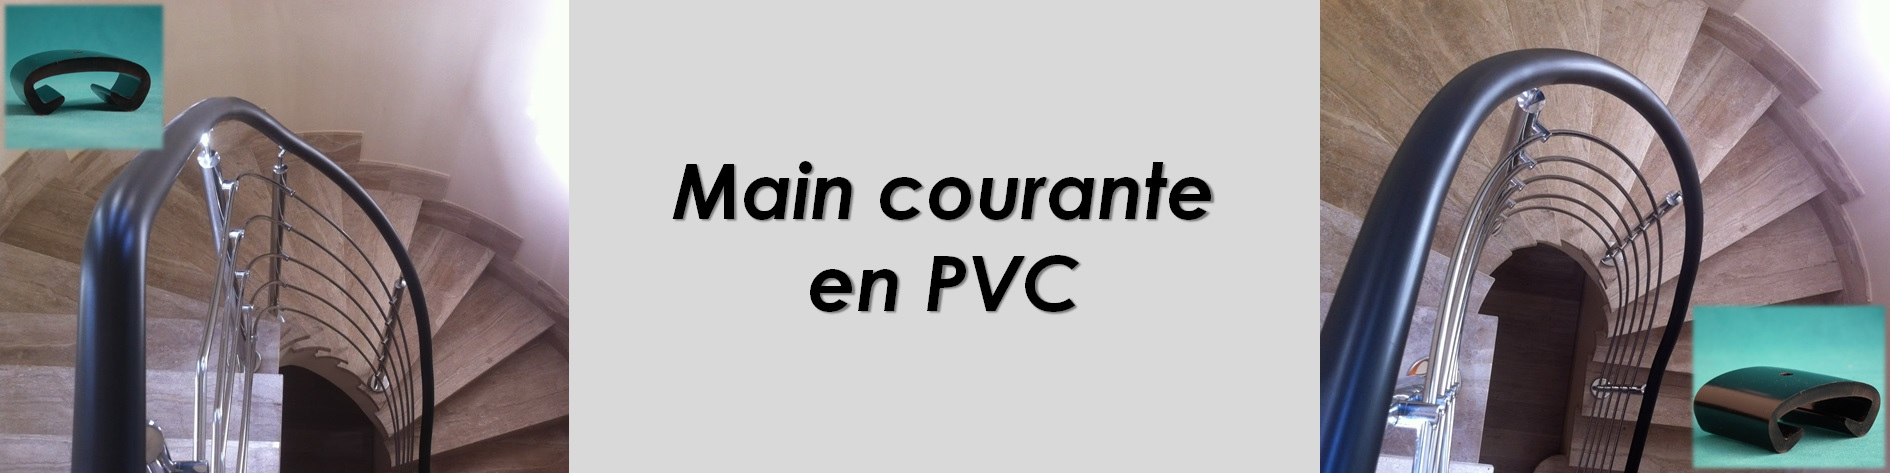 Main courante en PVC